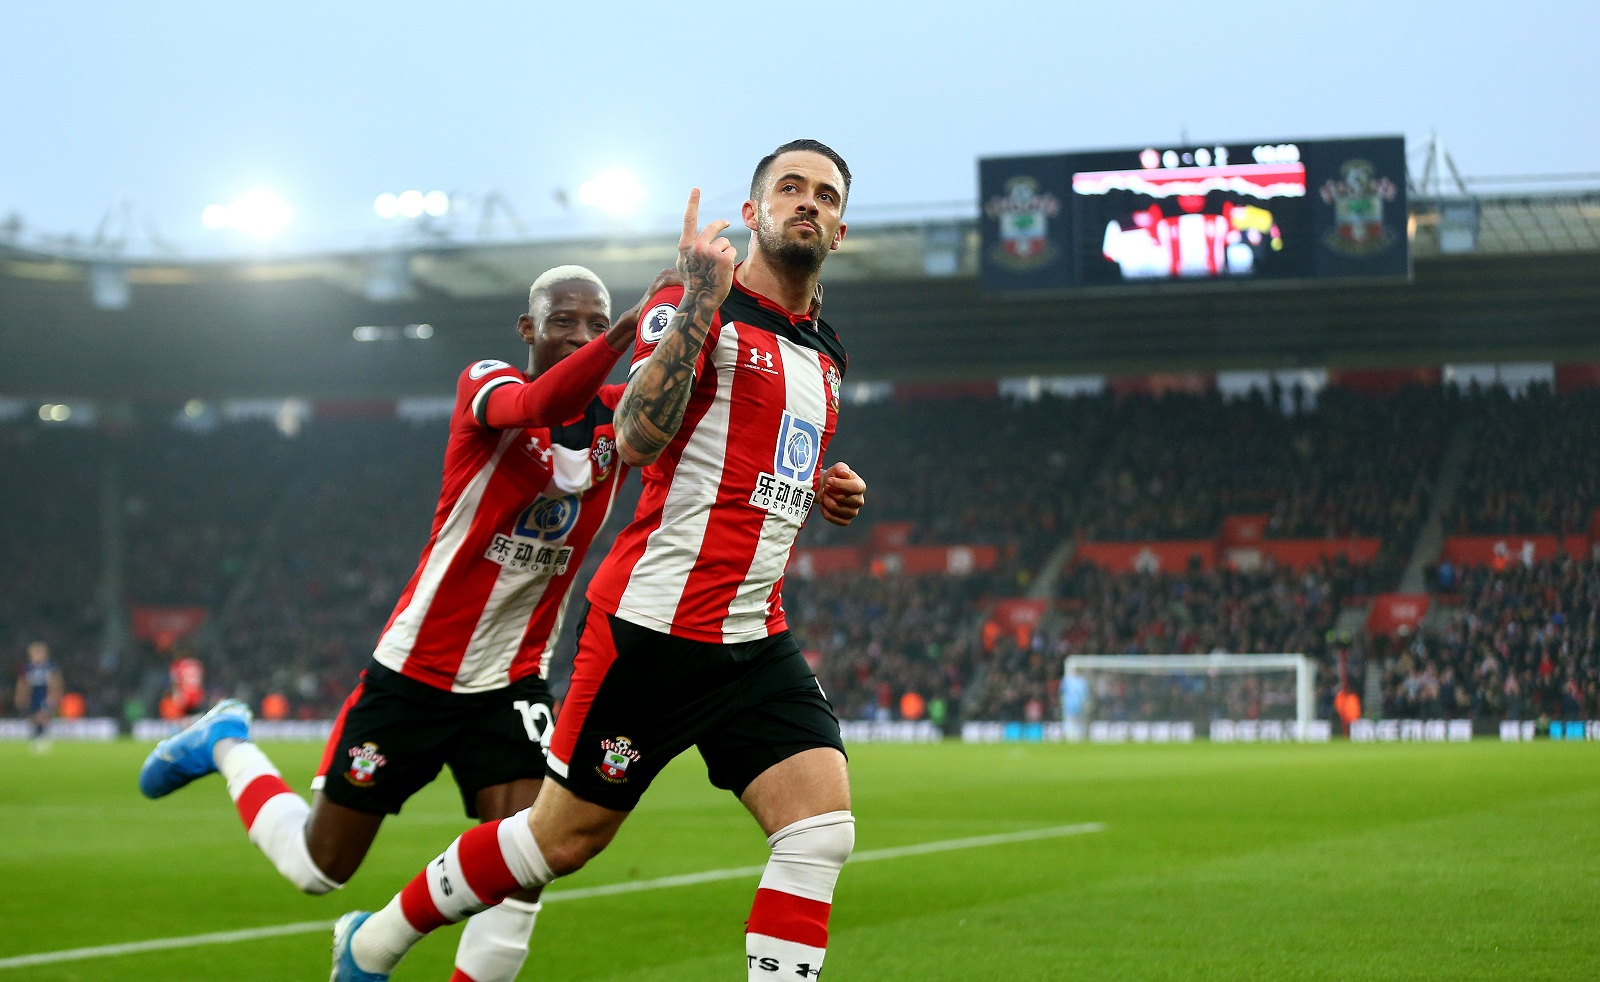 Southampton manager dismisses Ings exit speculations (Getty Images)